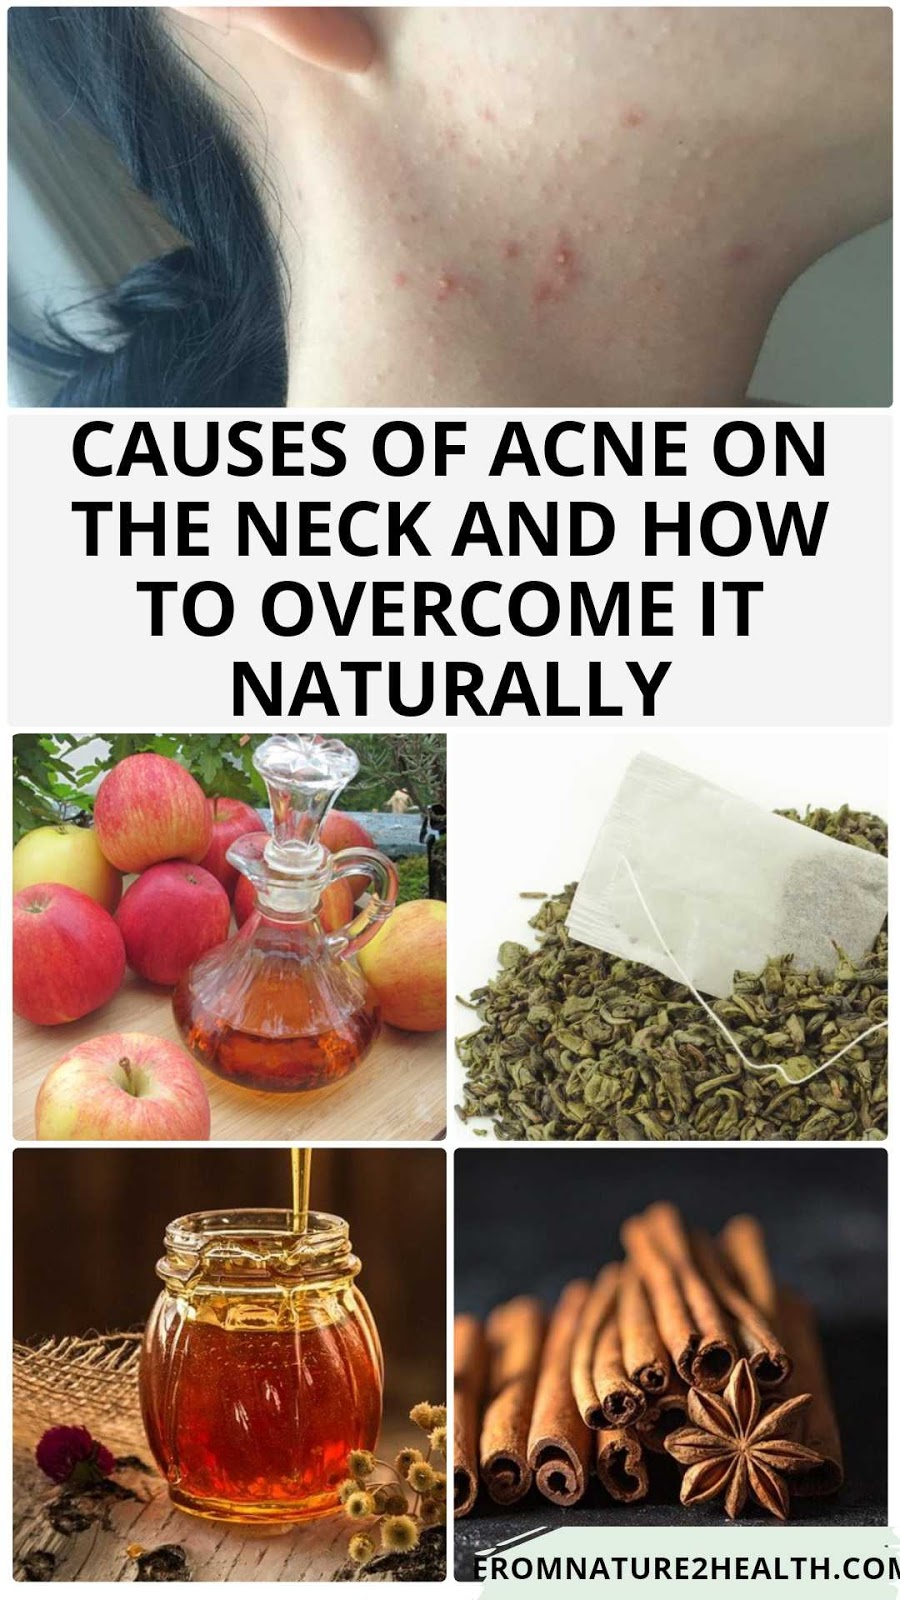 Causes of Acne on the Neck and How to Overcome It Naturally